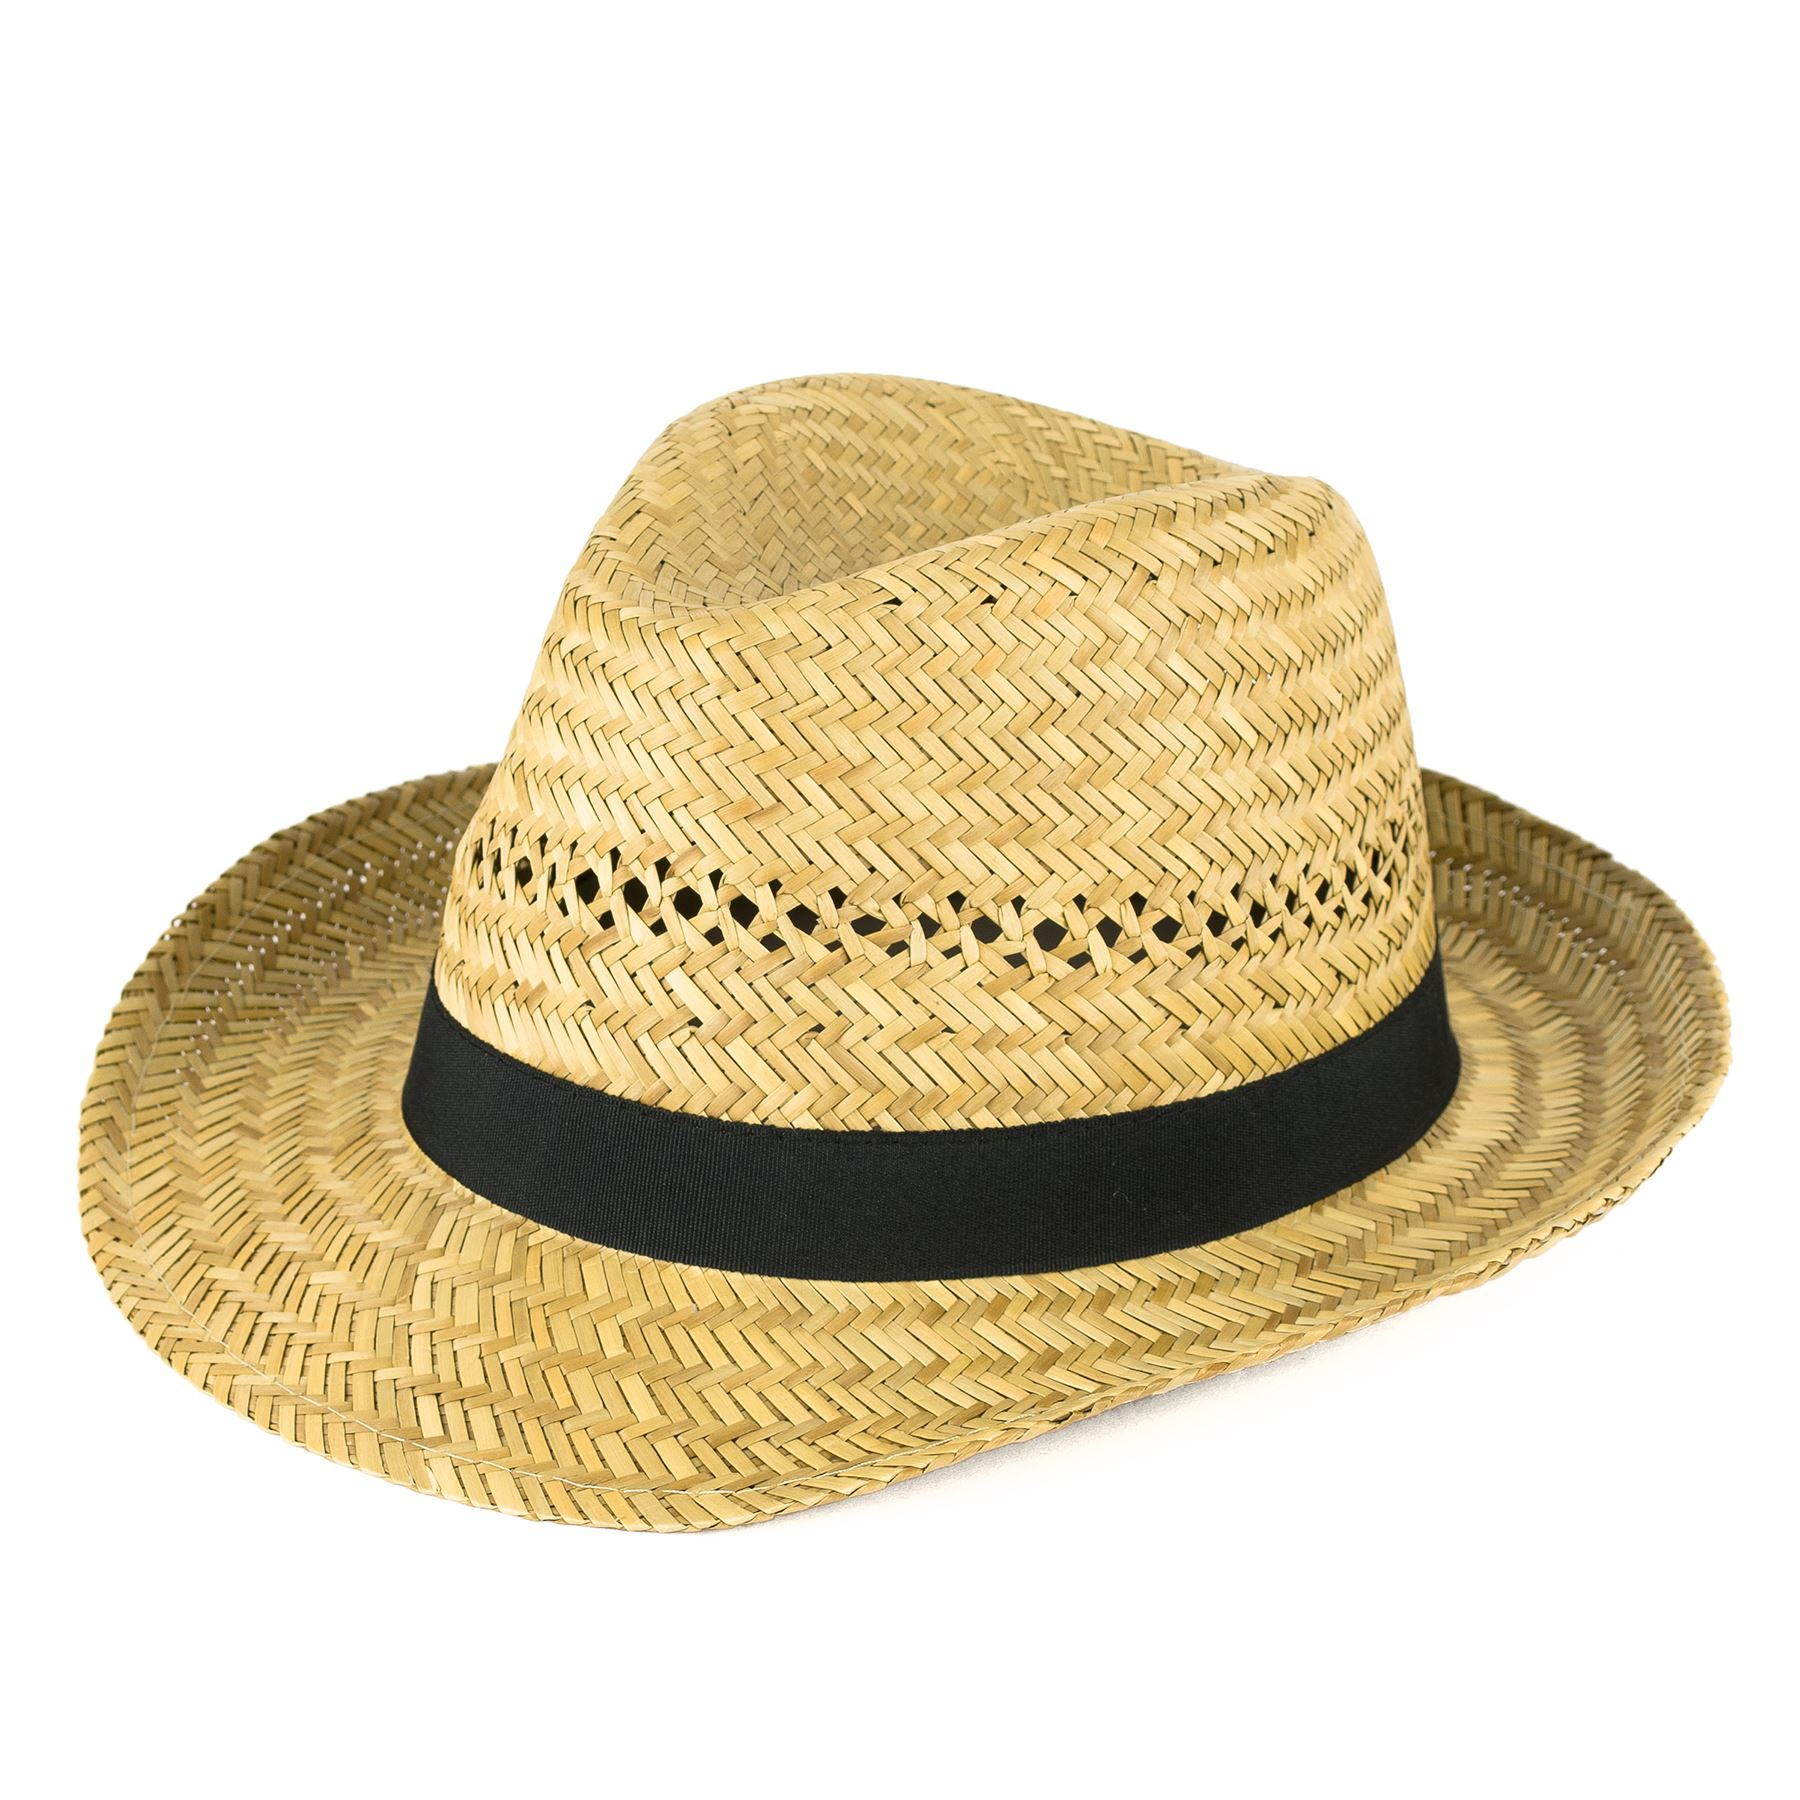 31d80d532927c Straw Fedora Hat With Black Grosgrain Band 58 Cm. About this product.  Picture 1 of 2  Picture 2 of 2